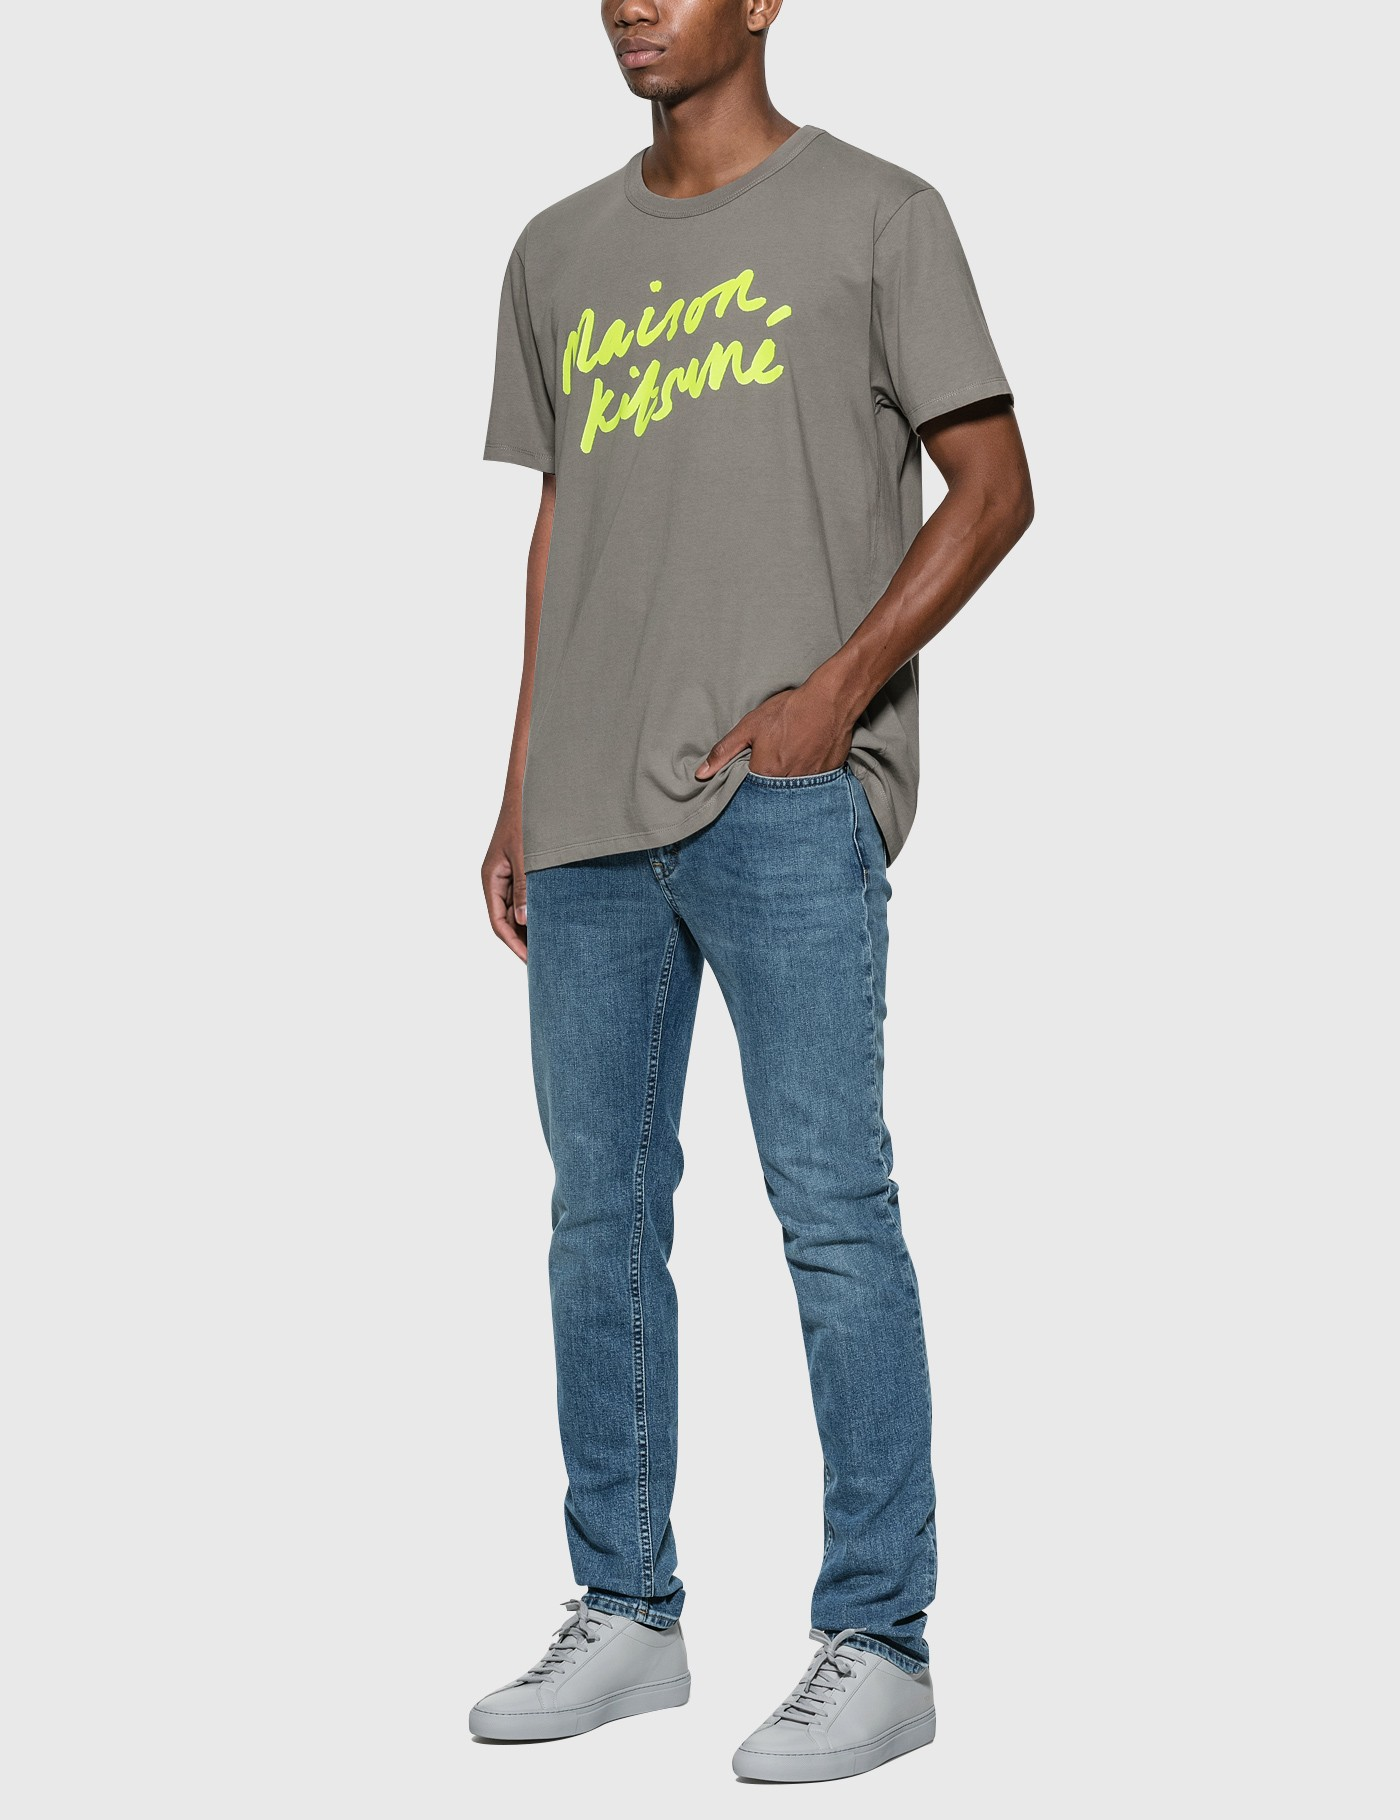 MAISON KITSUNE Handwriting T-Shirt grey